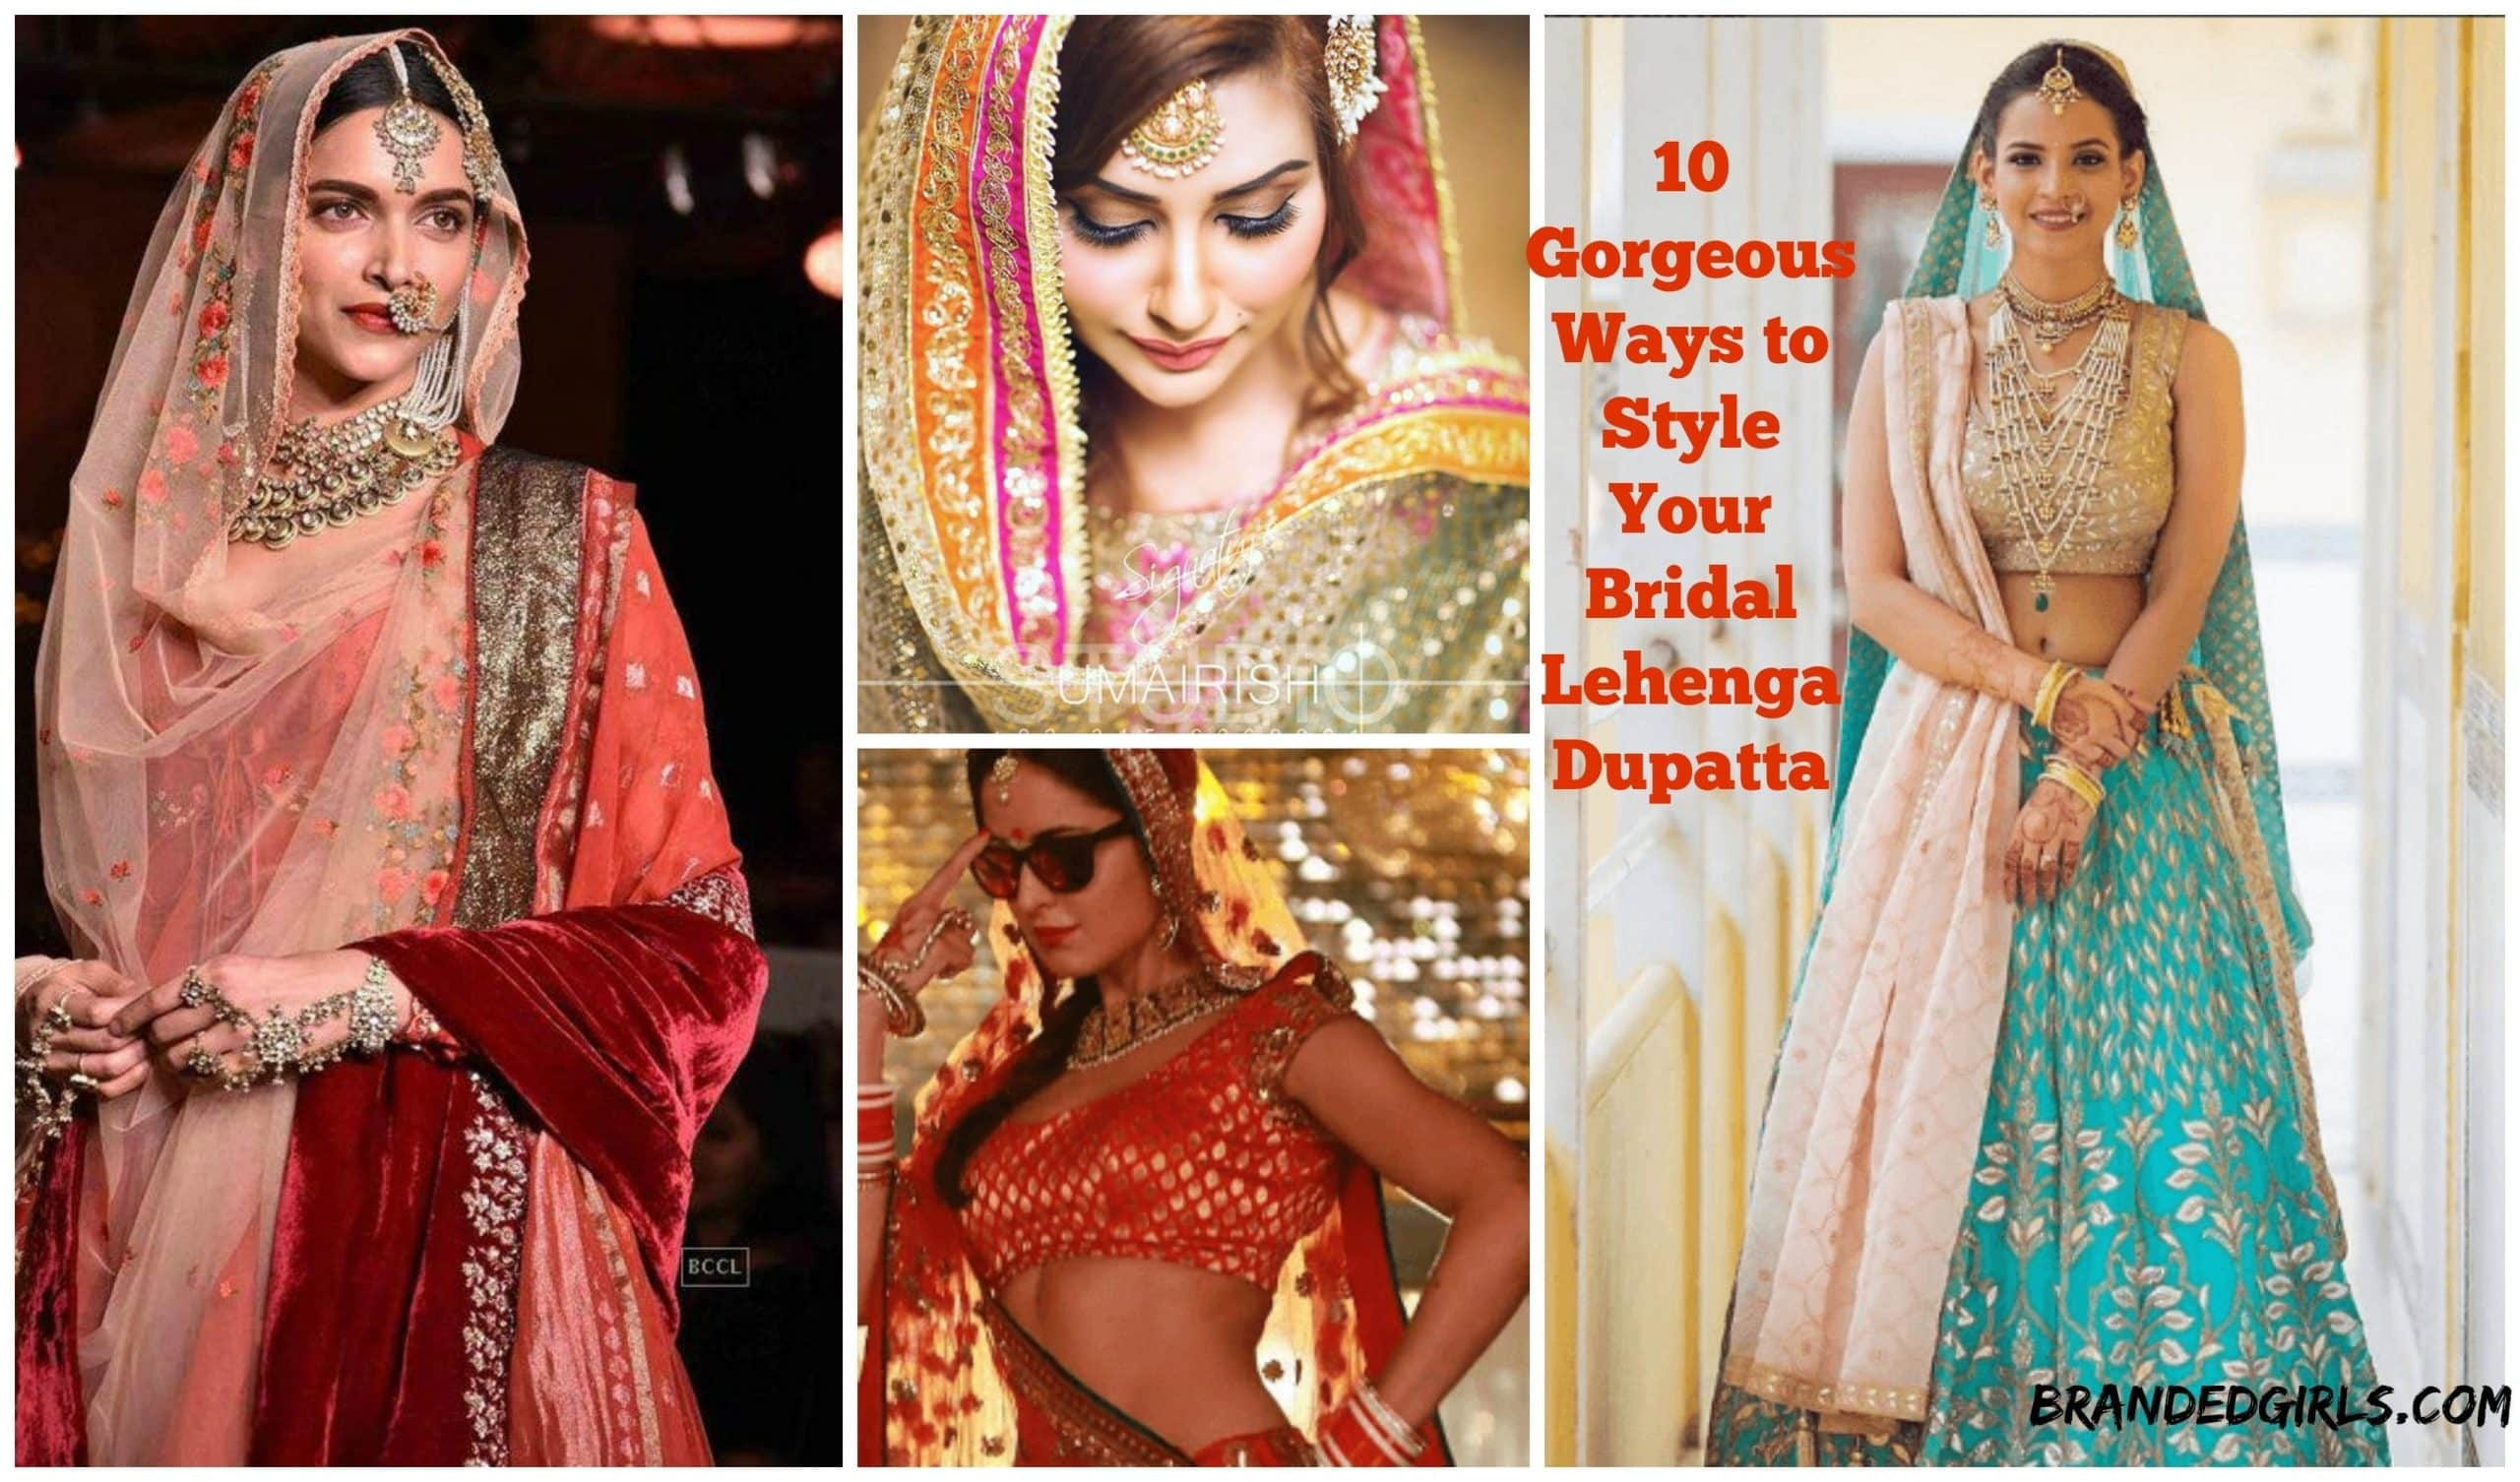 28 Best Lehenga dupatta images | Saree hairstyles, Bridal ...